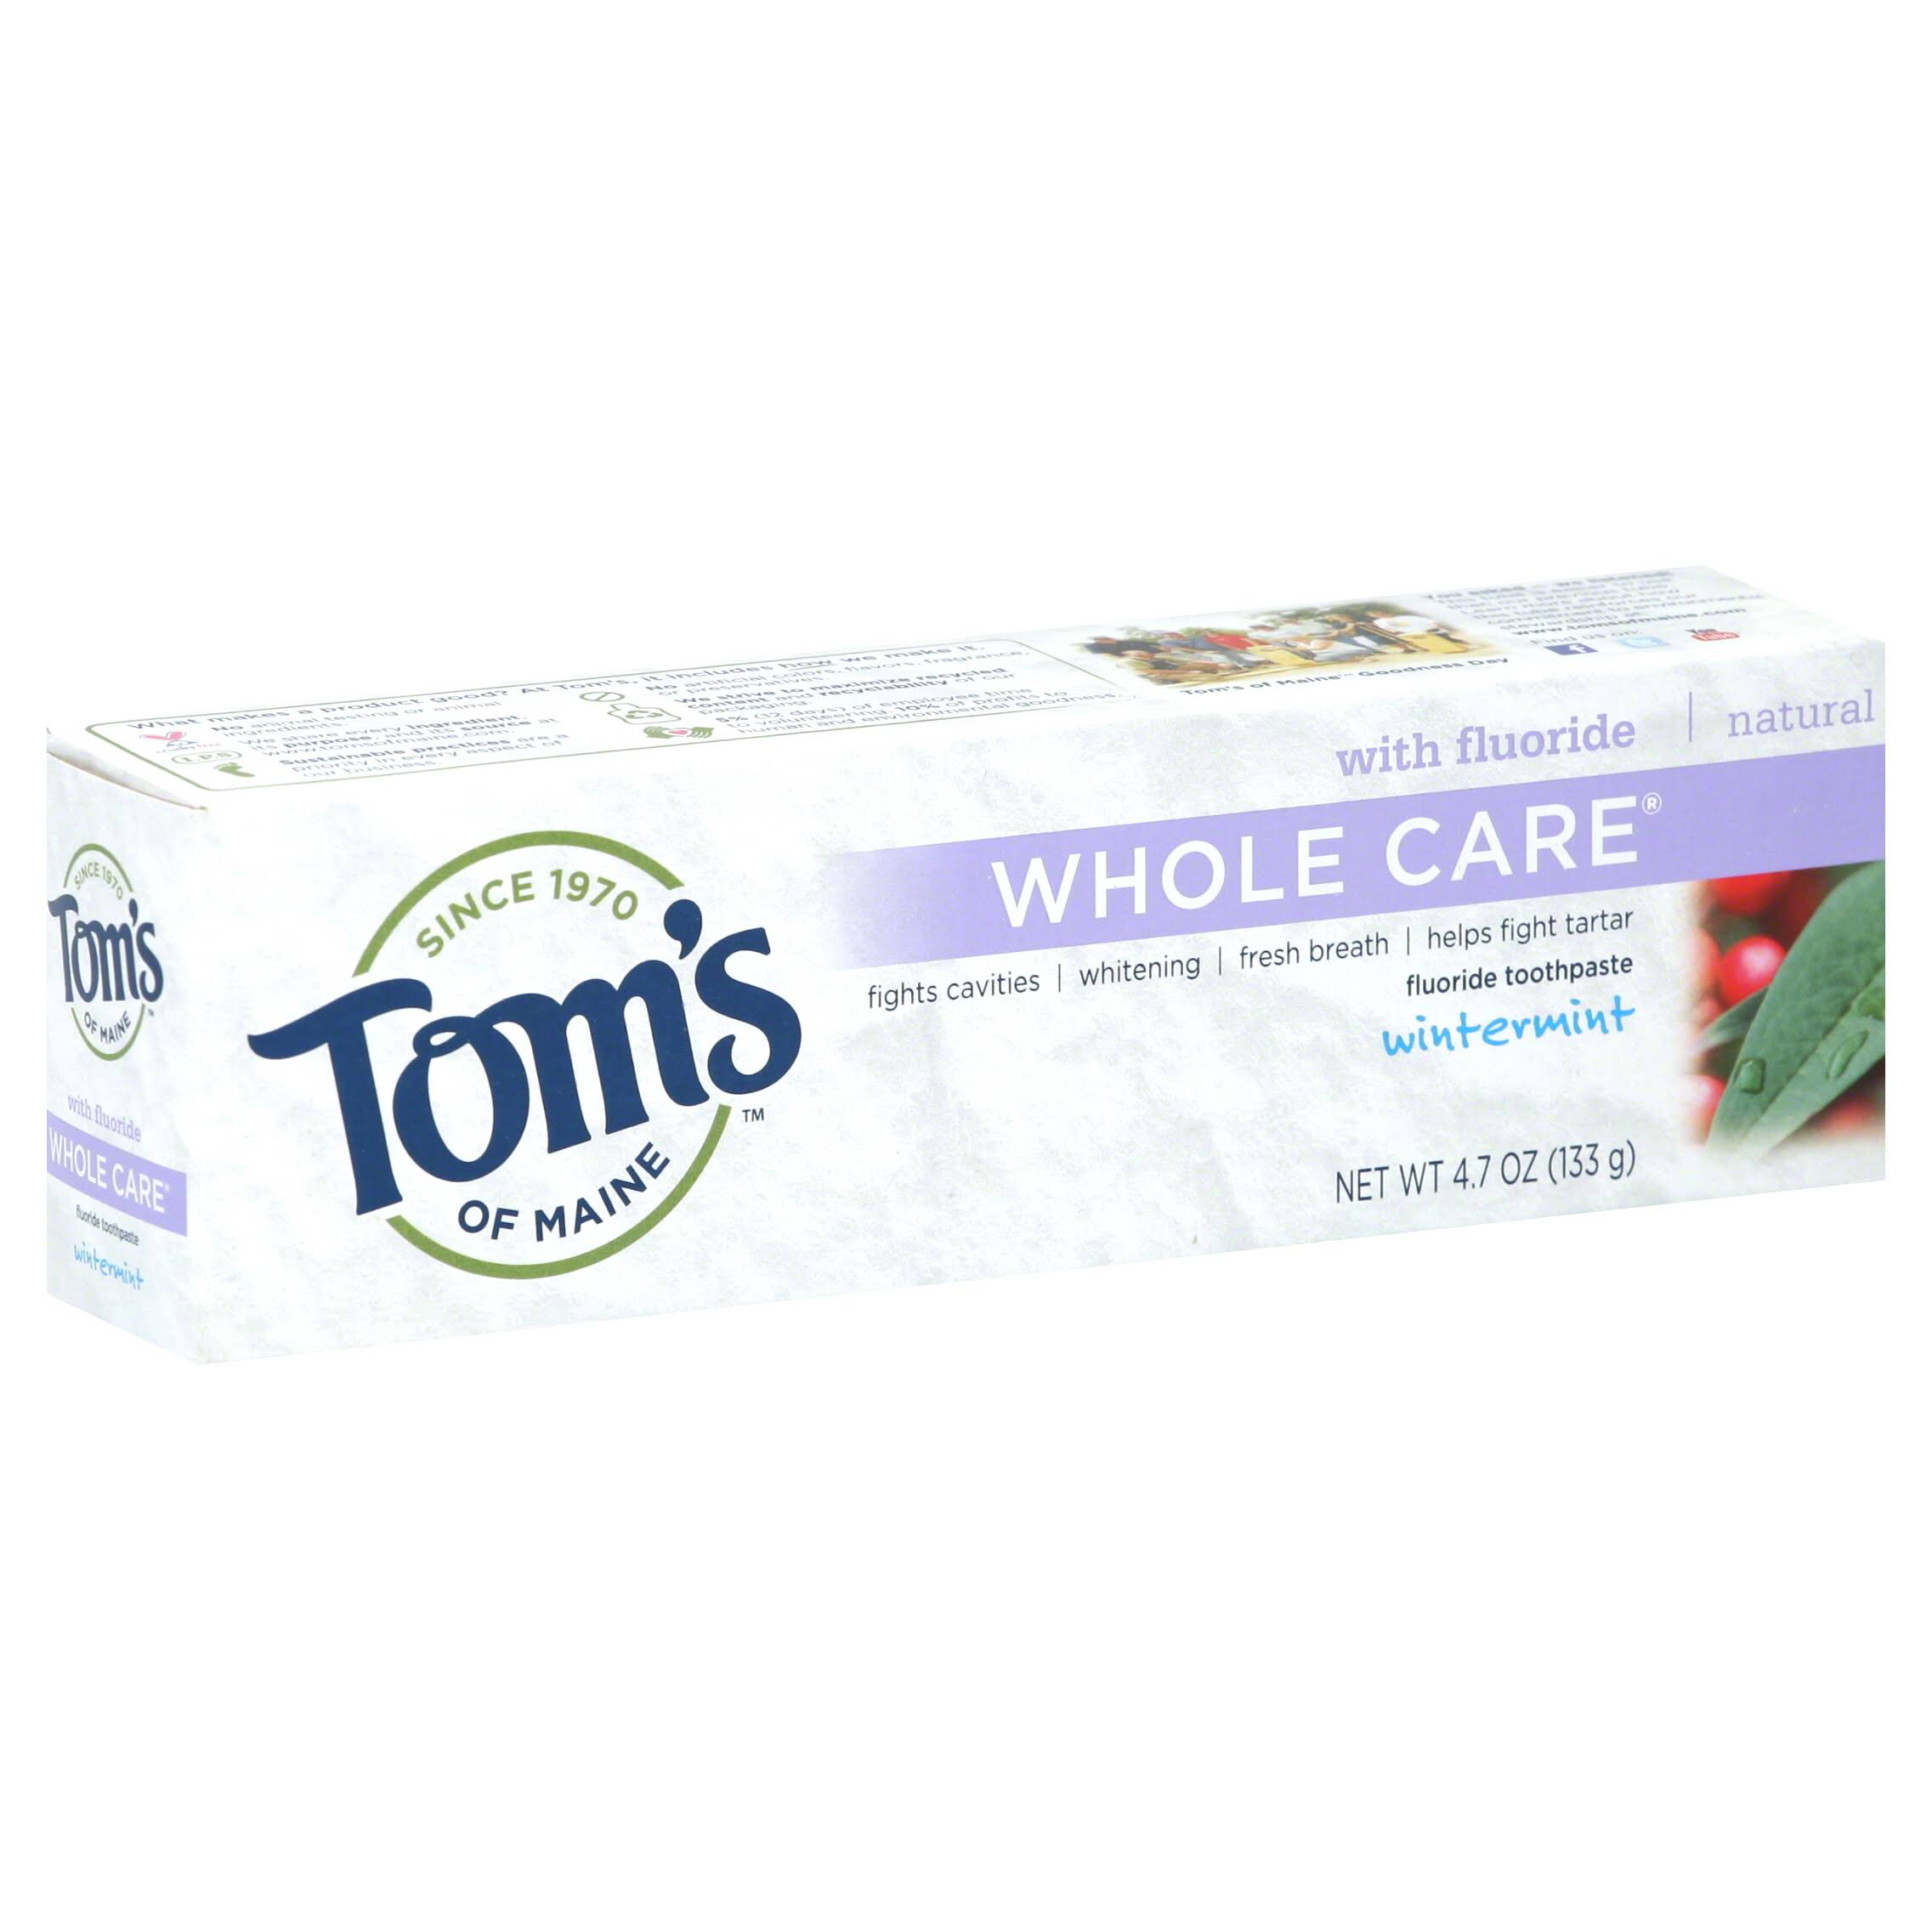 Tom's of Maine Whole Care Wintermint Fluoride Toothpaste - 4.7 oz